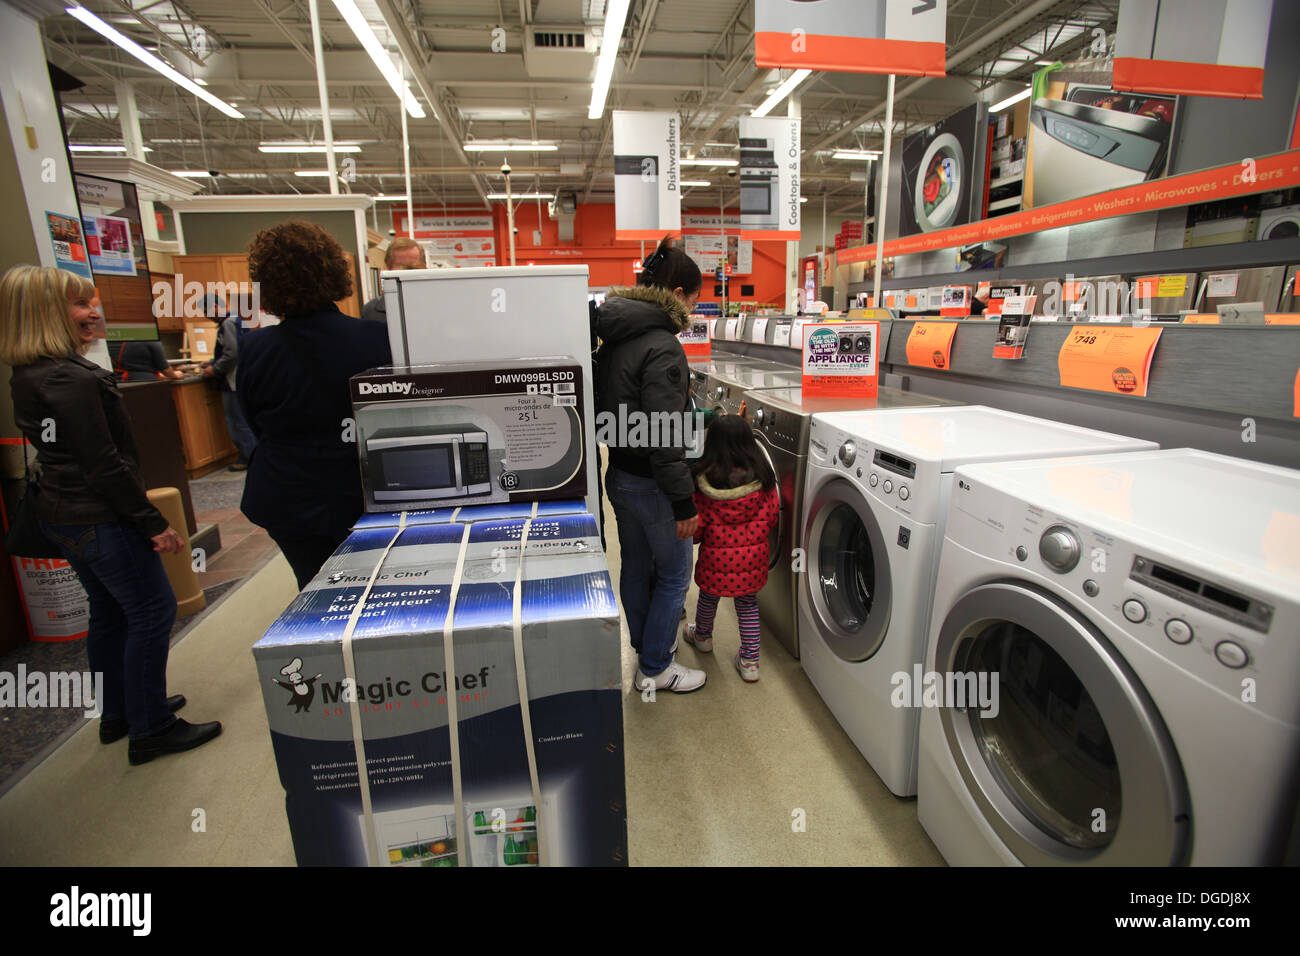 Home Depot Store Warehouse Stock Photos Trailer Wiring Electric Washing Machines And Dryers For Sale In The Kitchener Ontario